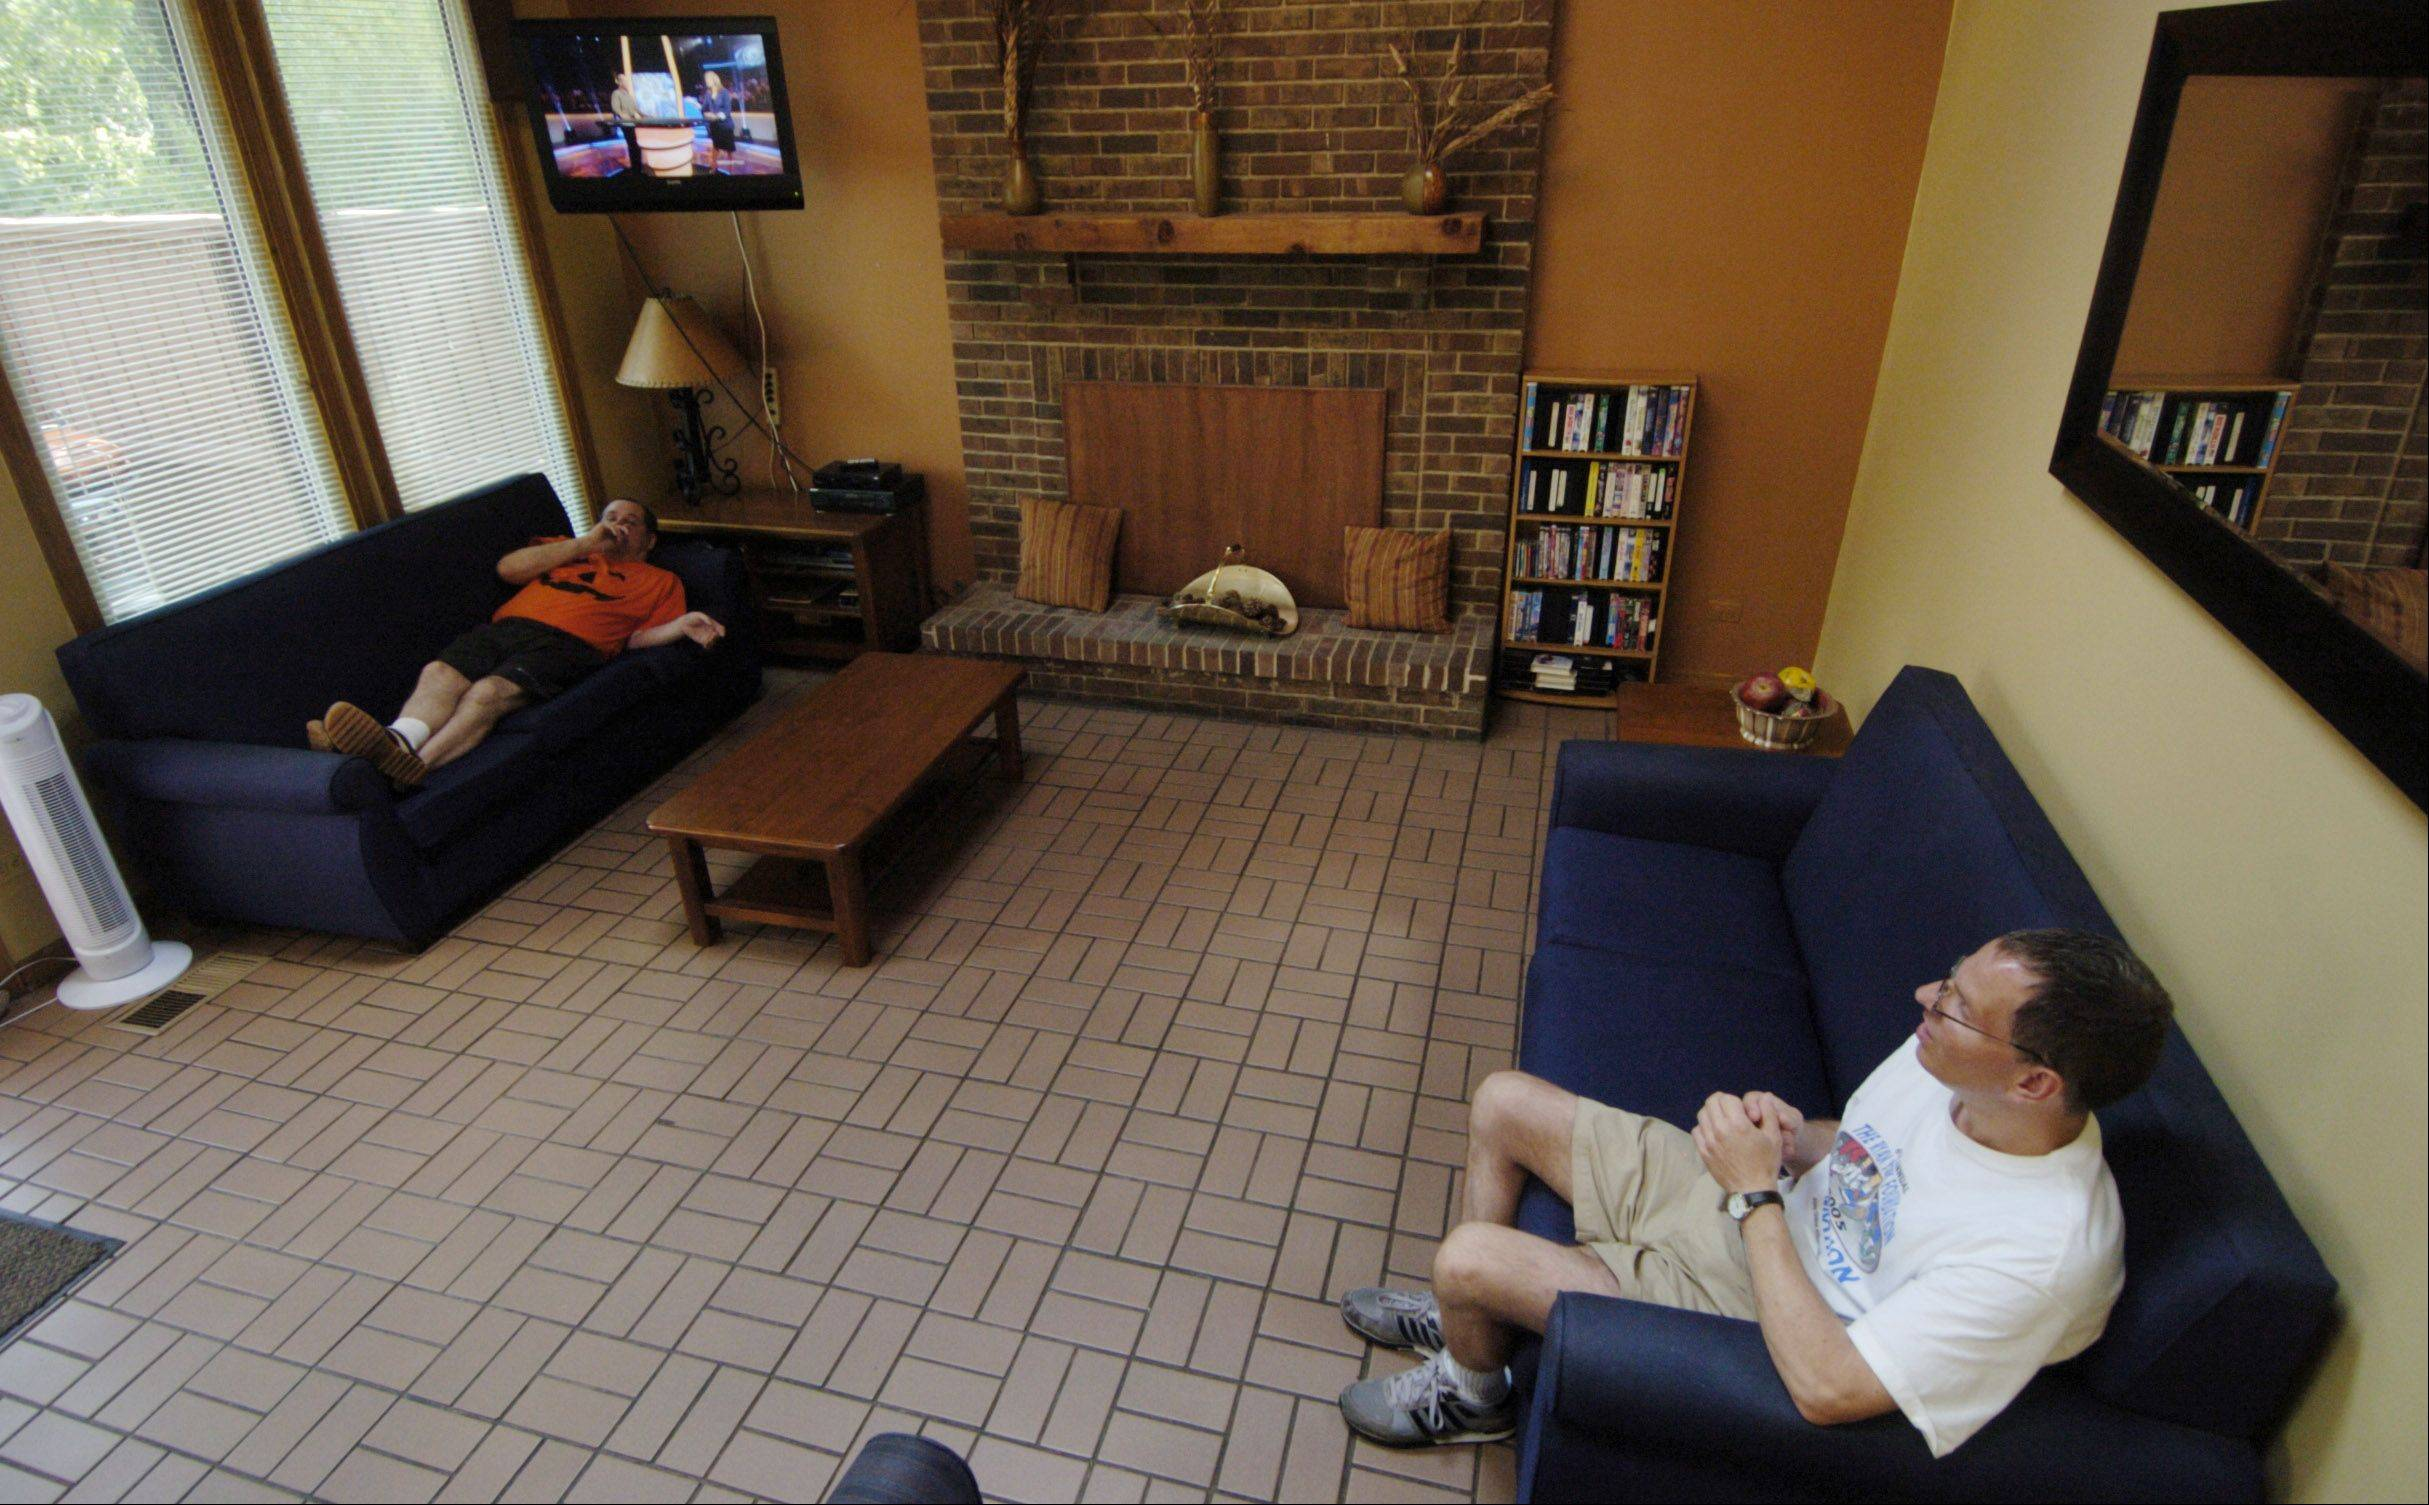 Residents relax in the living room of a Little City group home in Palatine for developmentally and intellectually disabled men.